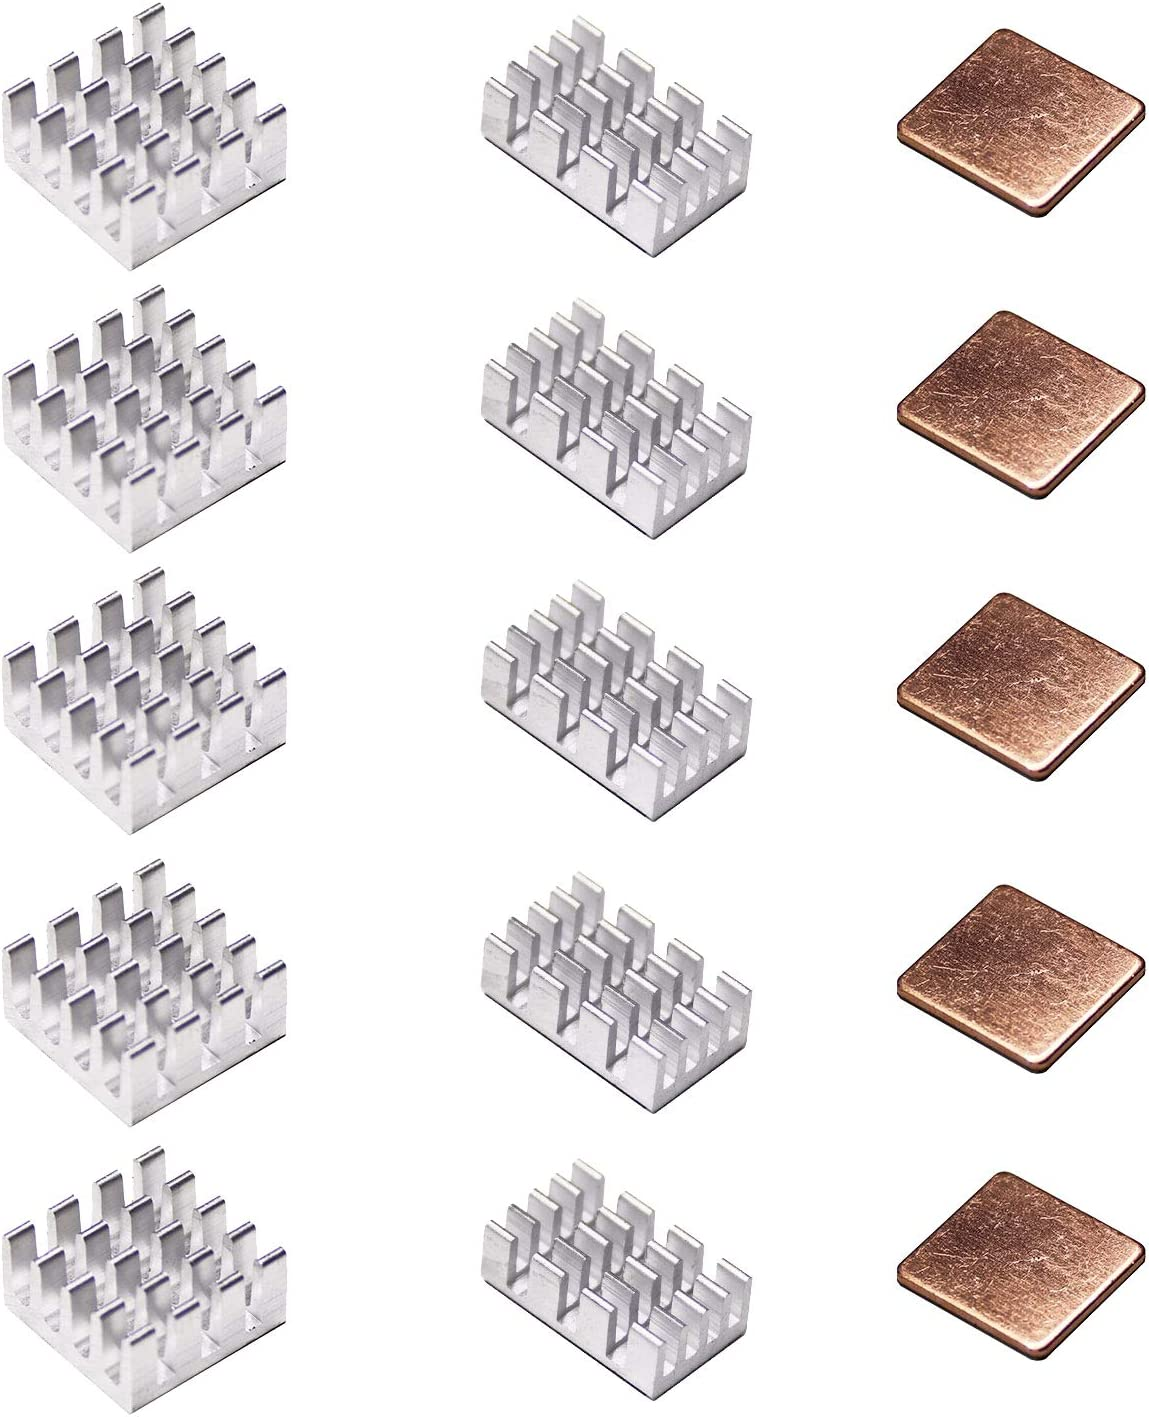 Pastall Raspberry Pi Heat Sink Cooler and Copper Heatsink for Raspberry Pi B B+ 2/3/4, Heatsink Copper Pad Shims with Adhesive Tape (5copper+10aluminum)